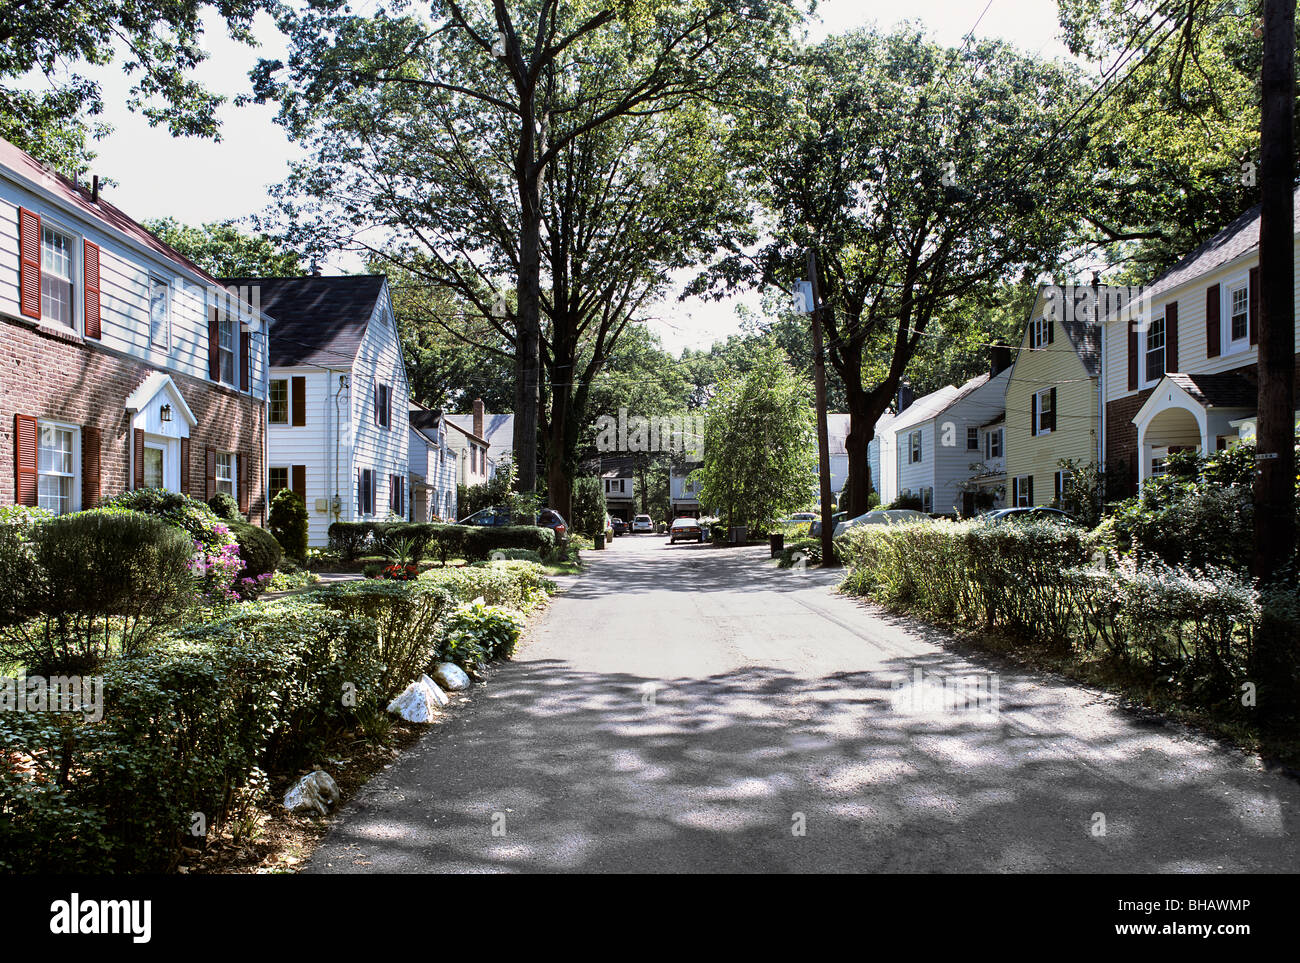 A typical cul-de-sac street for vehicle access in the model suburb of Radburn, Fair Lawn, New Jersey, USA - Stock Image